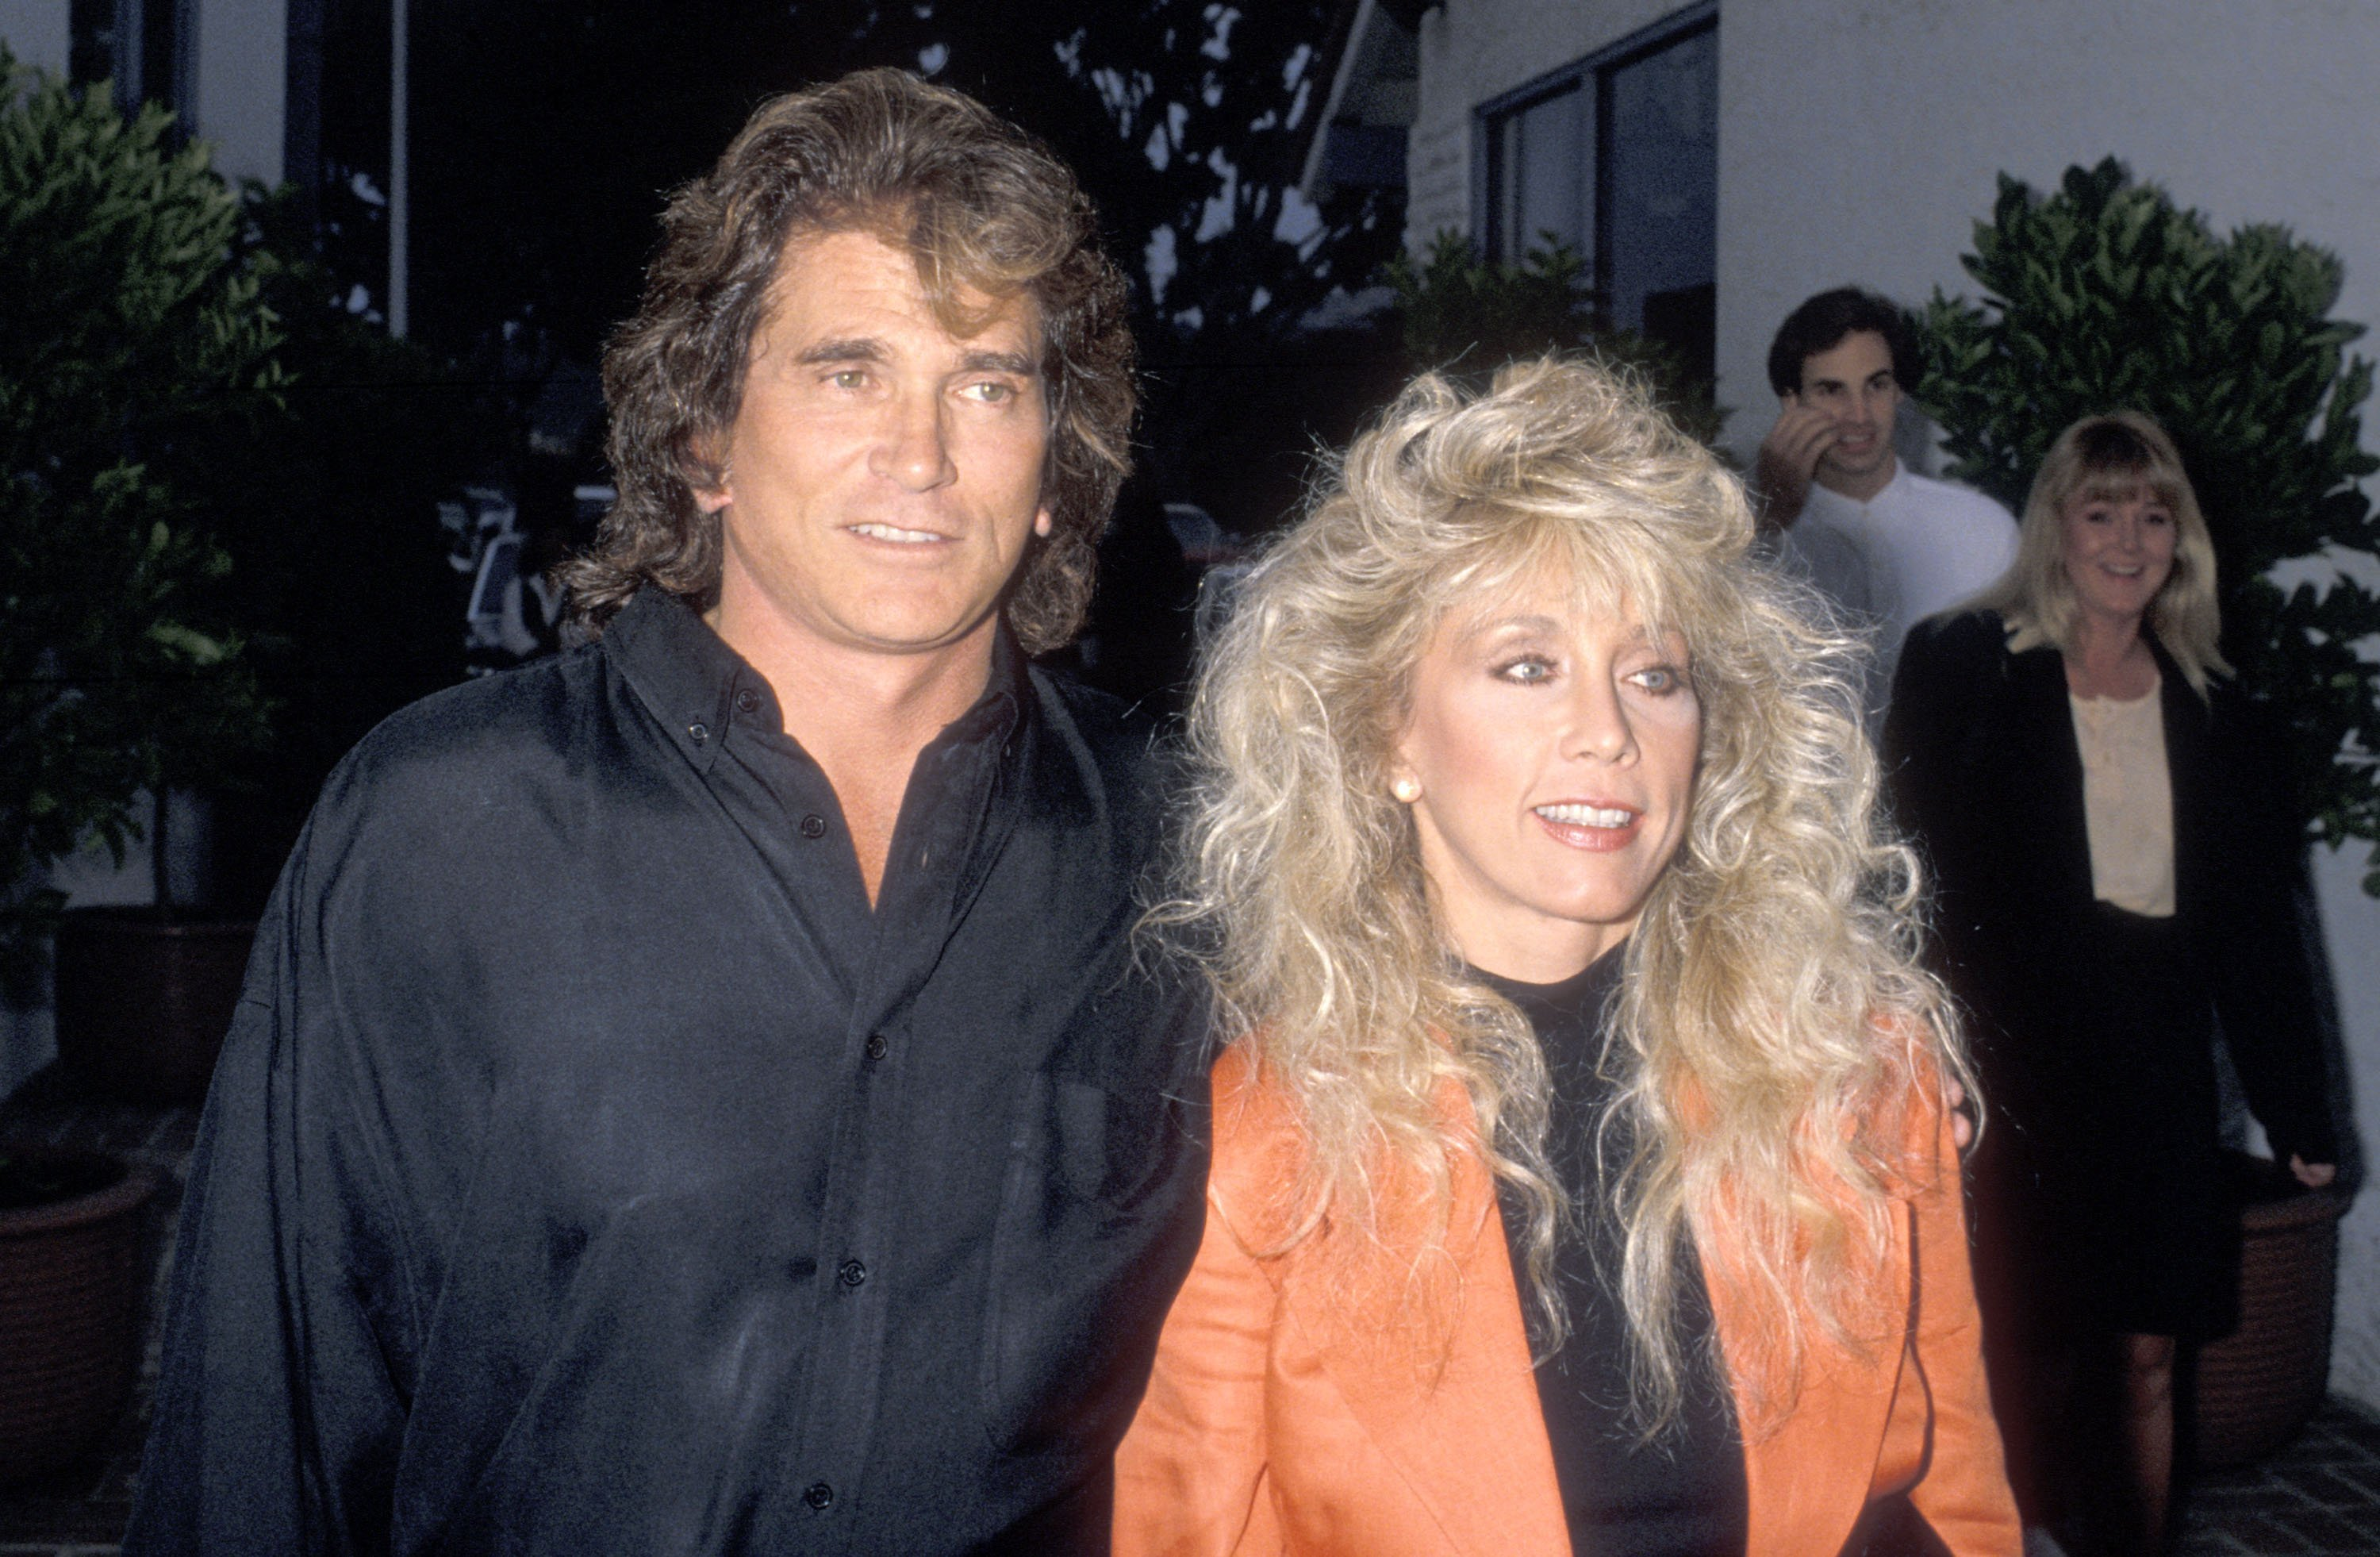 Michael Landon and wife Cindy Landon attend the La Scala Restaurant Grand Opening Celebration on June 2, 1989 in Malibu California | Photo: GettyImages